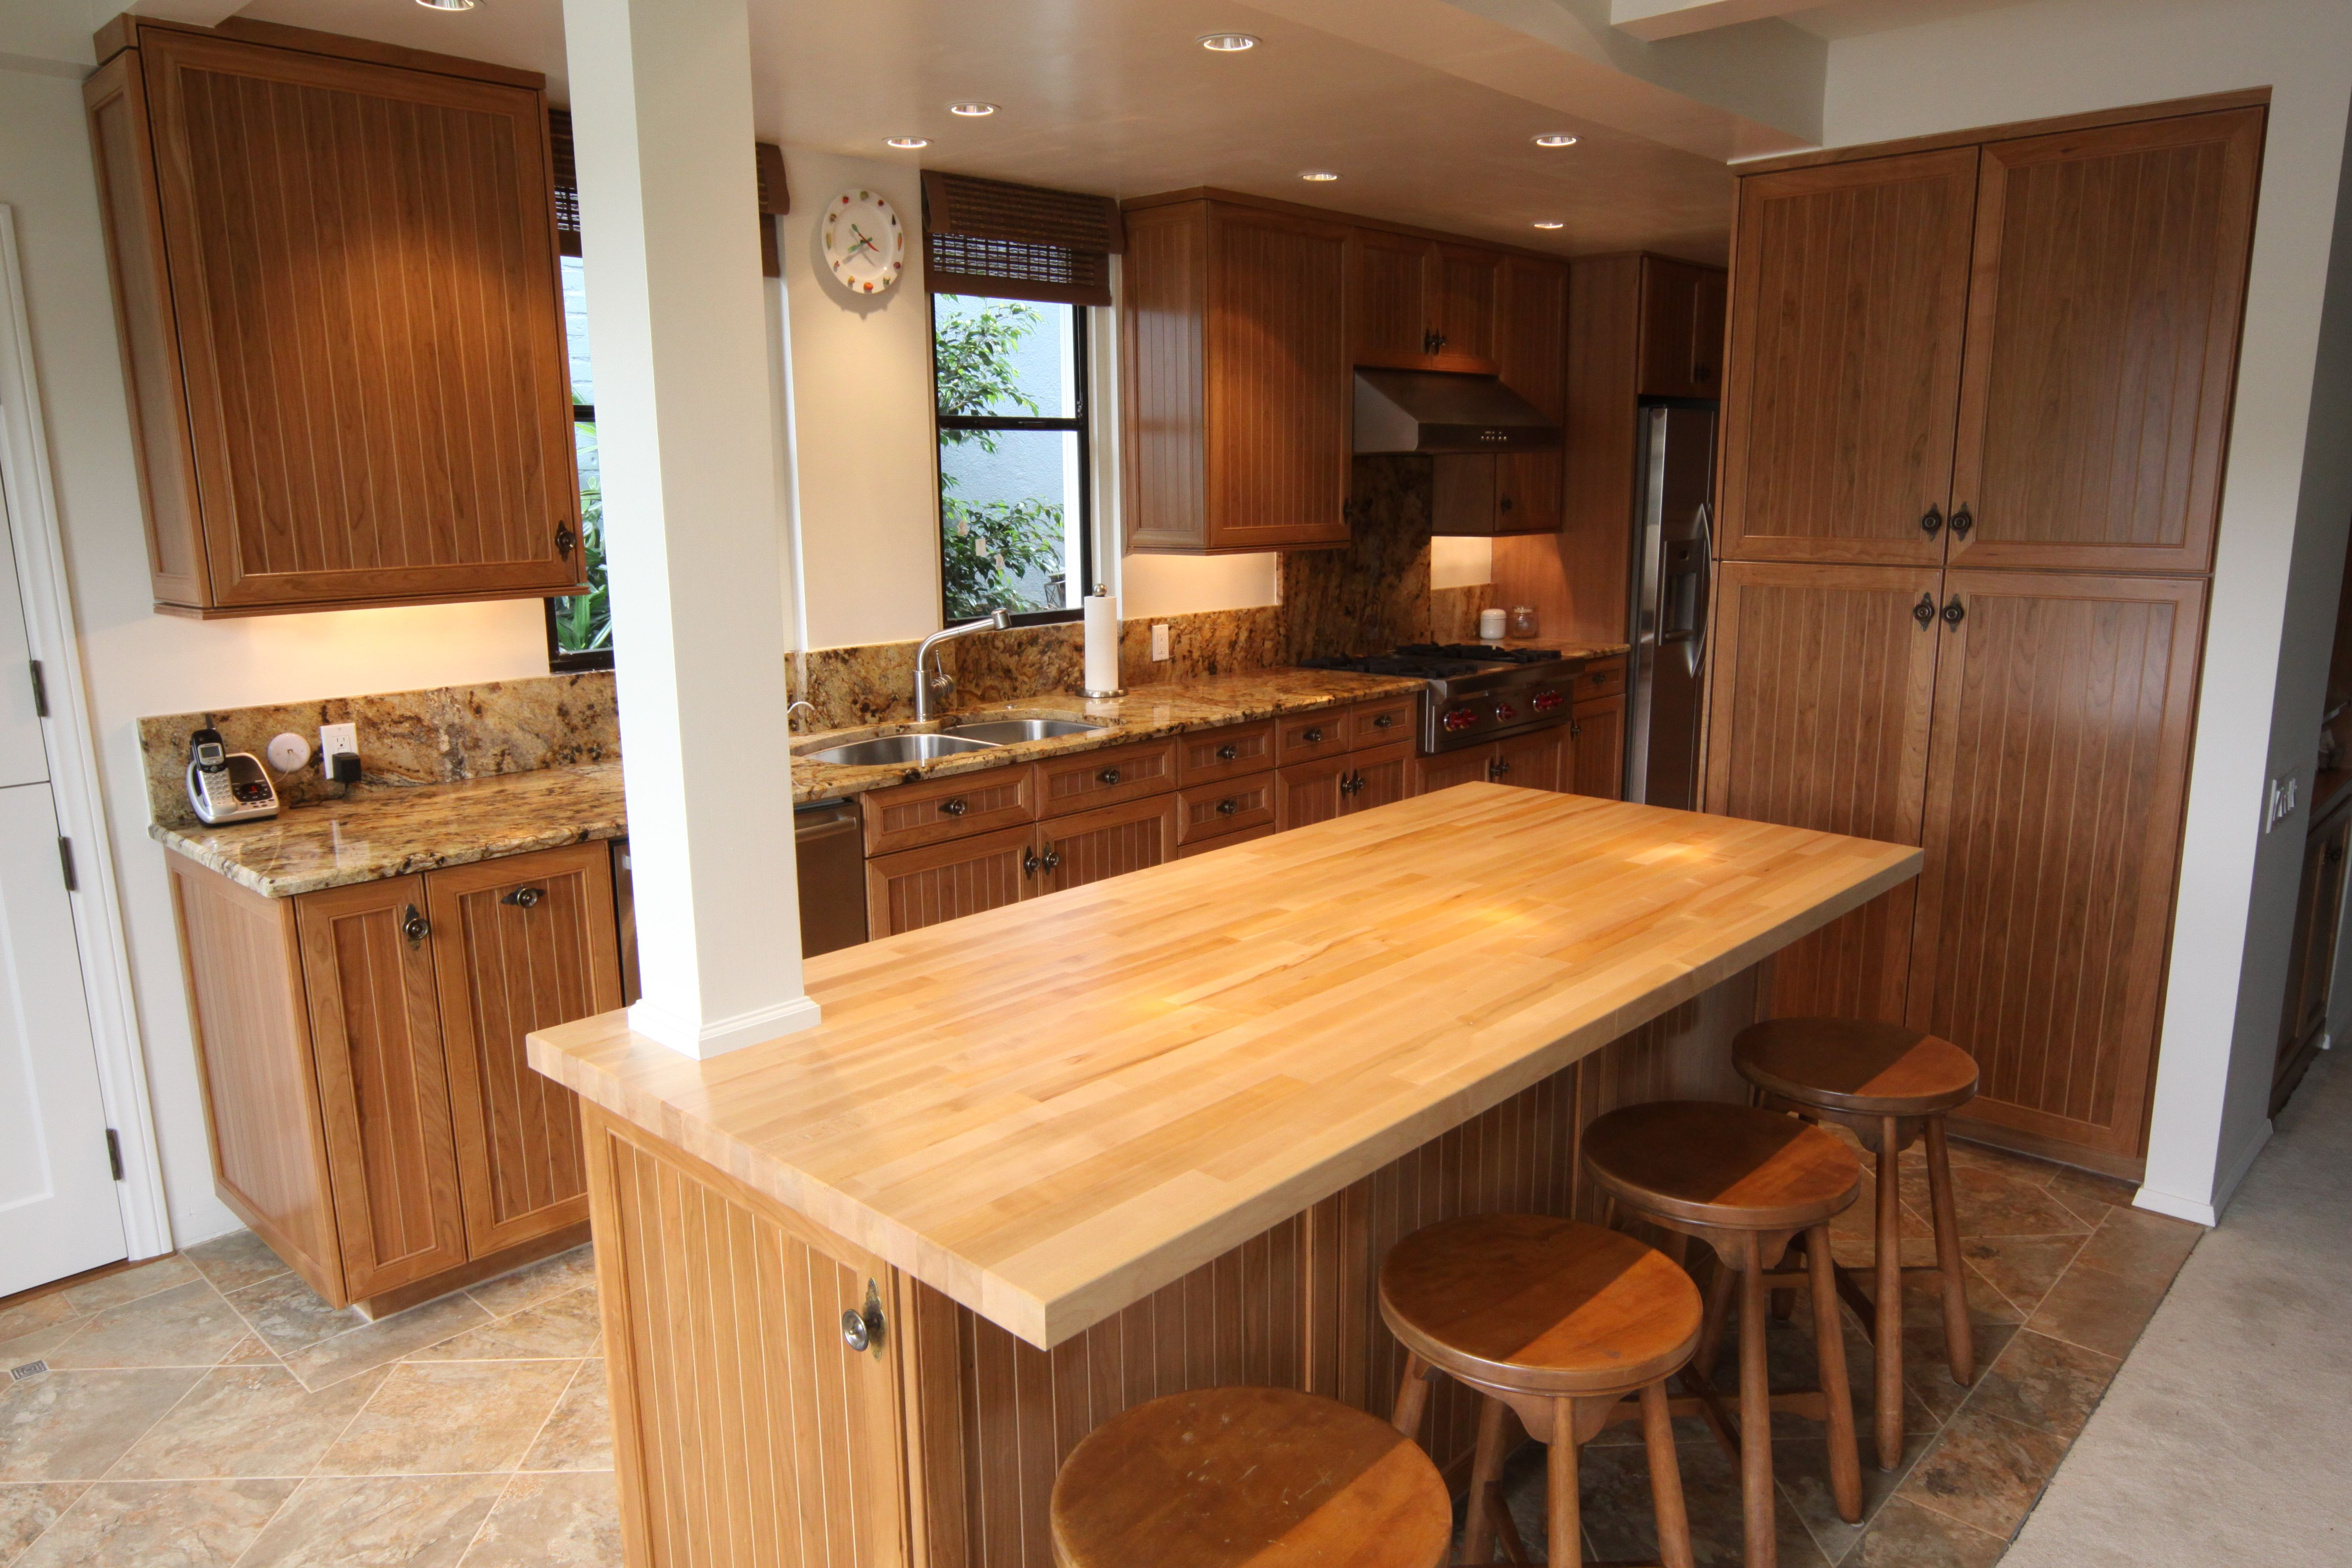 Best Finish For Butcher Block Countertop: Beautiful Cherry Cabinets With Clear Satin Lacquer Finish